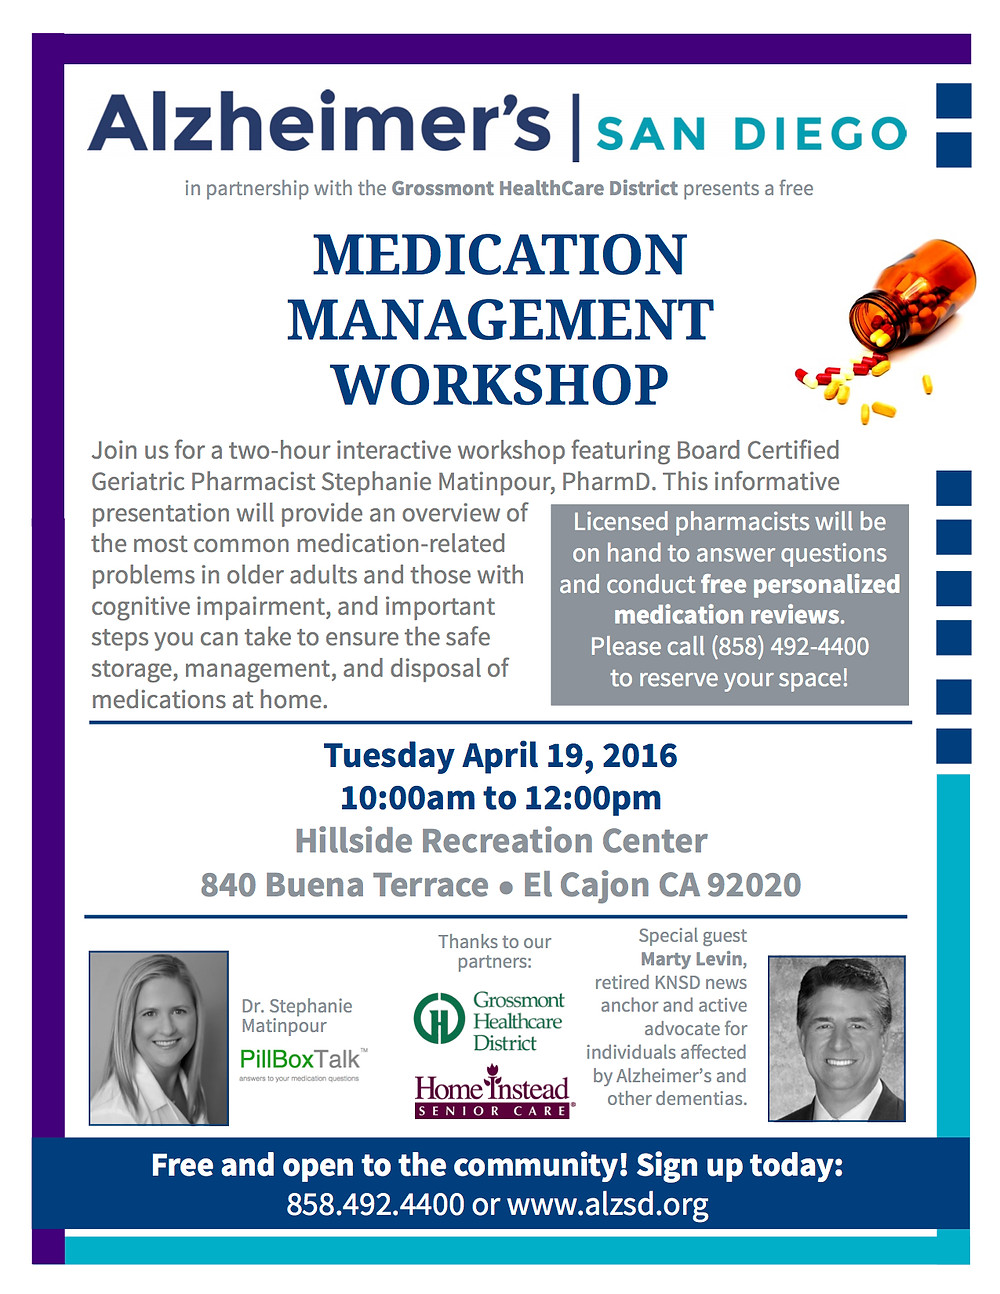 Questions about medications? Join us Tuesday April 19th for an interactive Medication Management Workshop, and sign up for a free on-site personalized medication review with a licensed pharmacist! Details and registration available at: http://www.alzsd.org/services/education/. Thank you to the Grossmont Healthcare District and Dr. Stephanie Matinpour at pillboxtalk for their support of this important program.